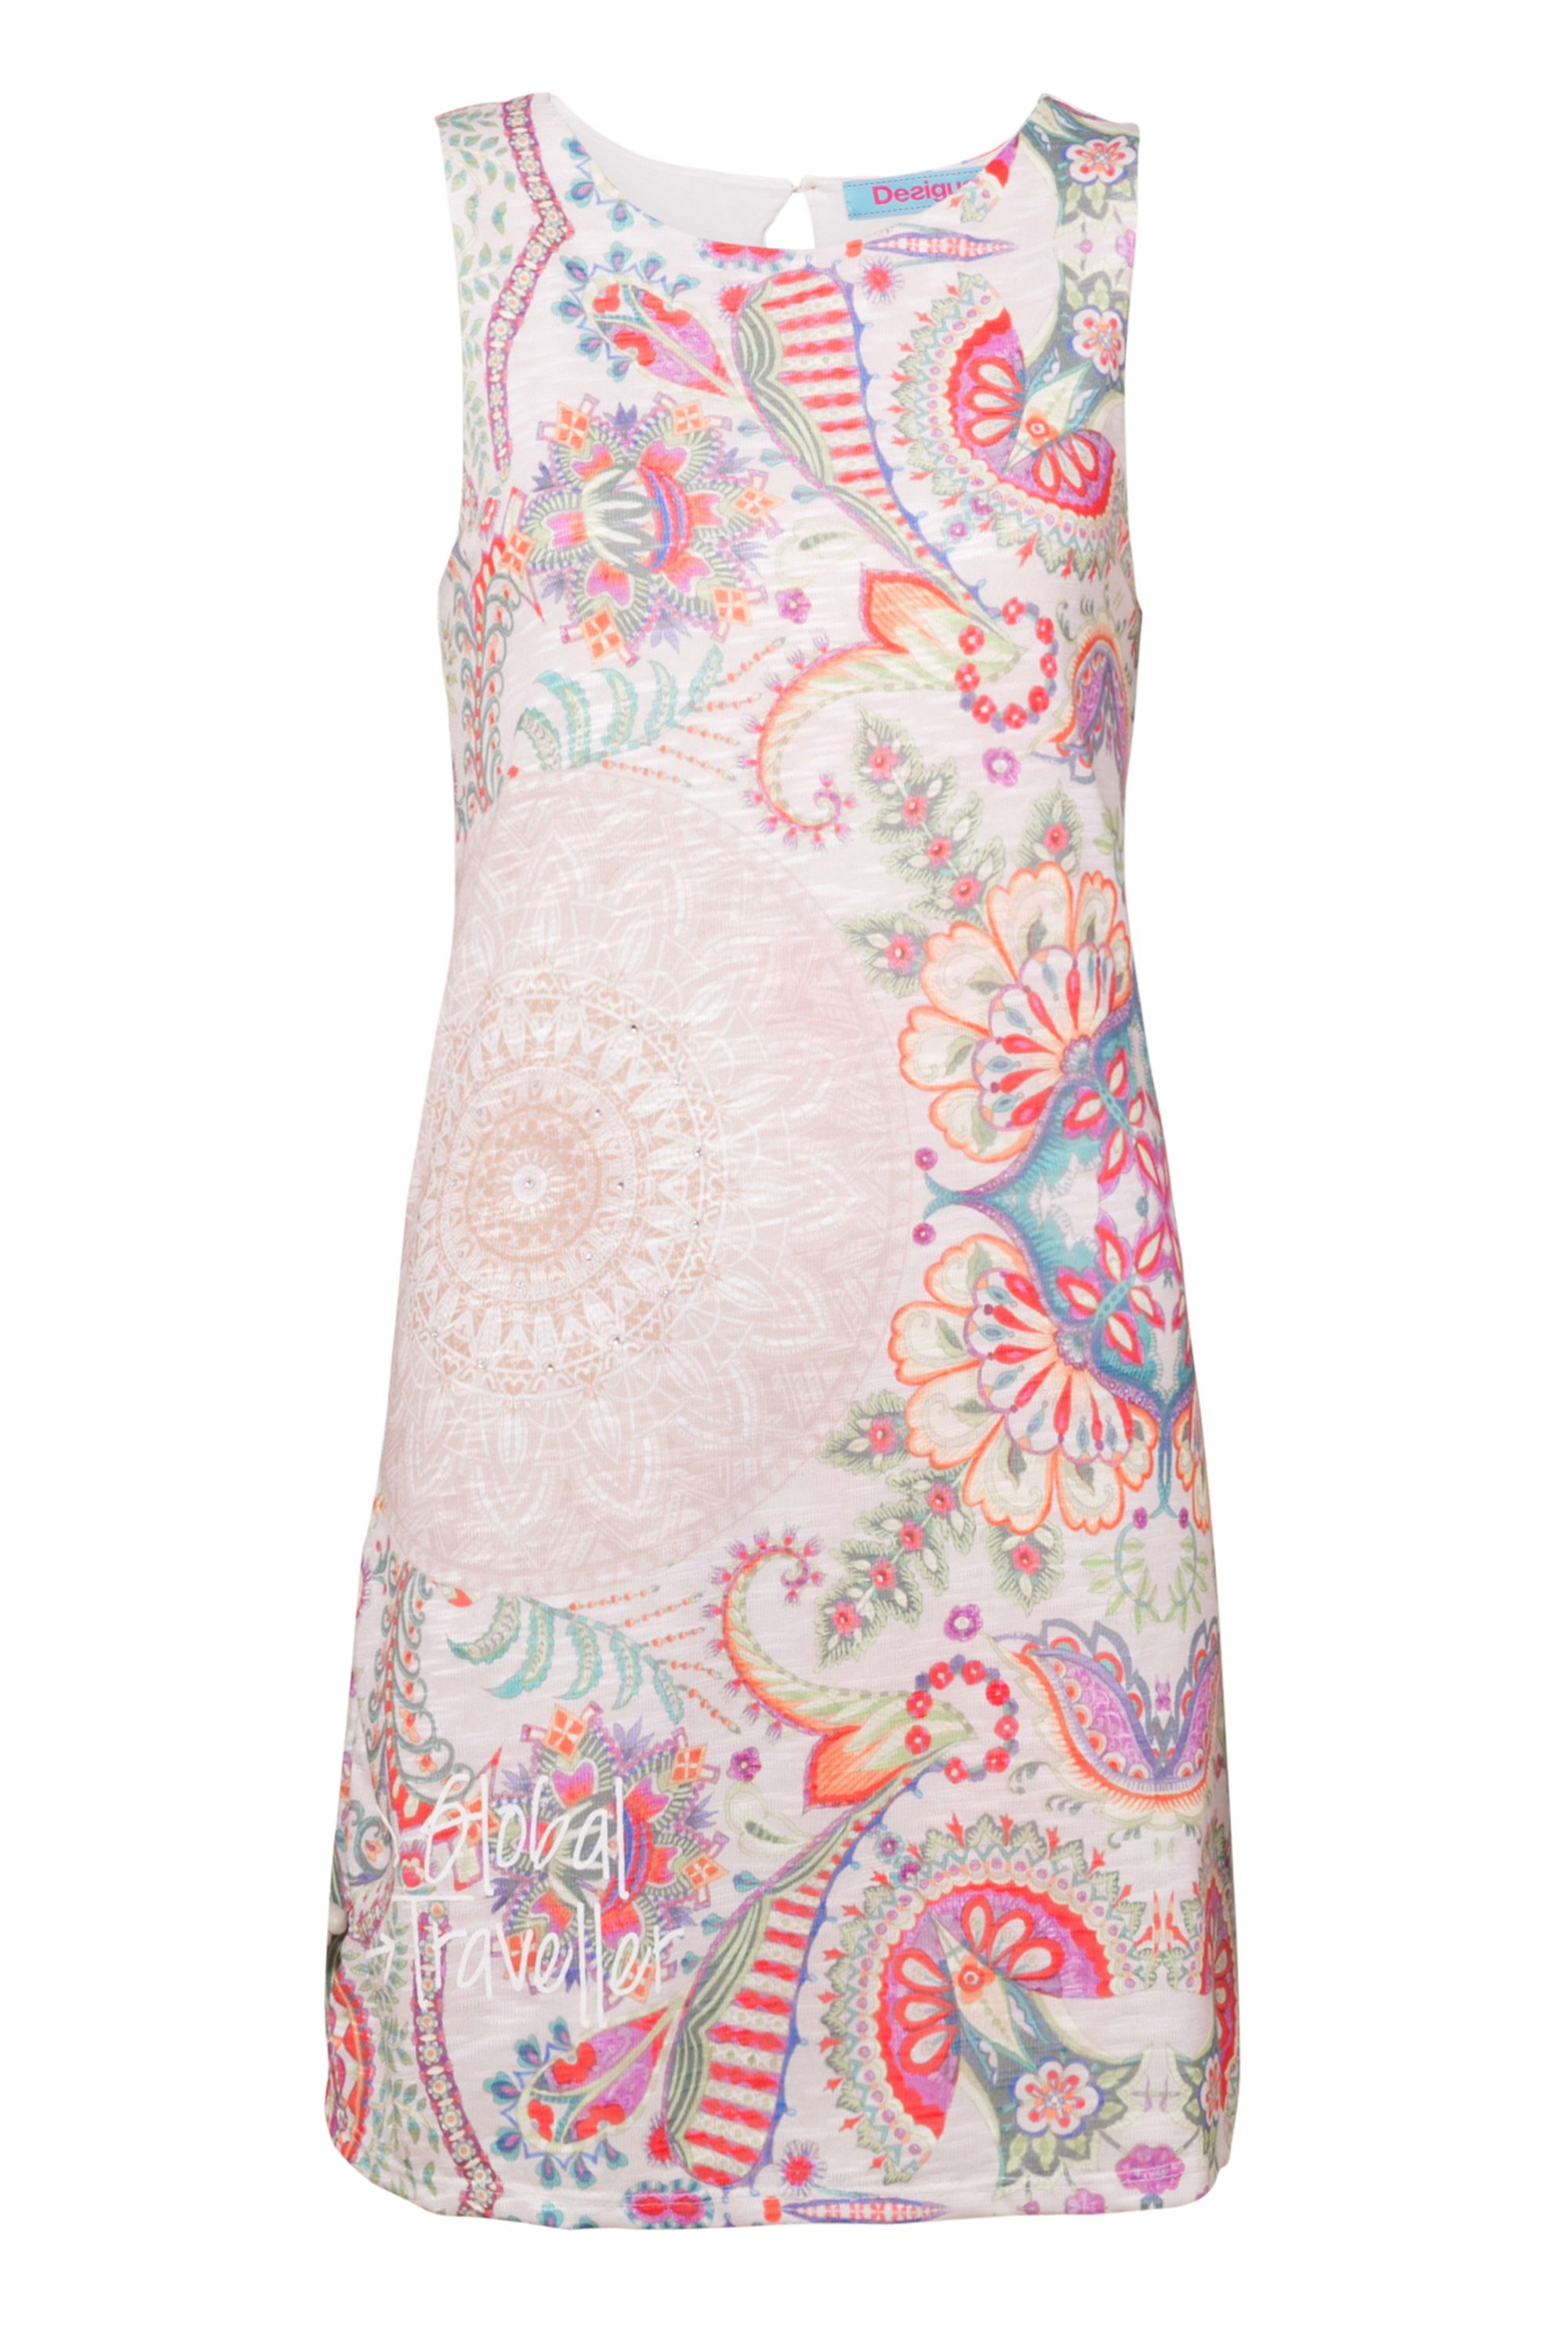 Desigual Dress Lágrima Valkiria, White